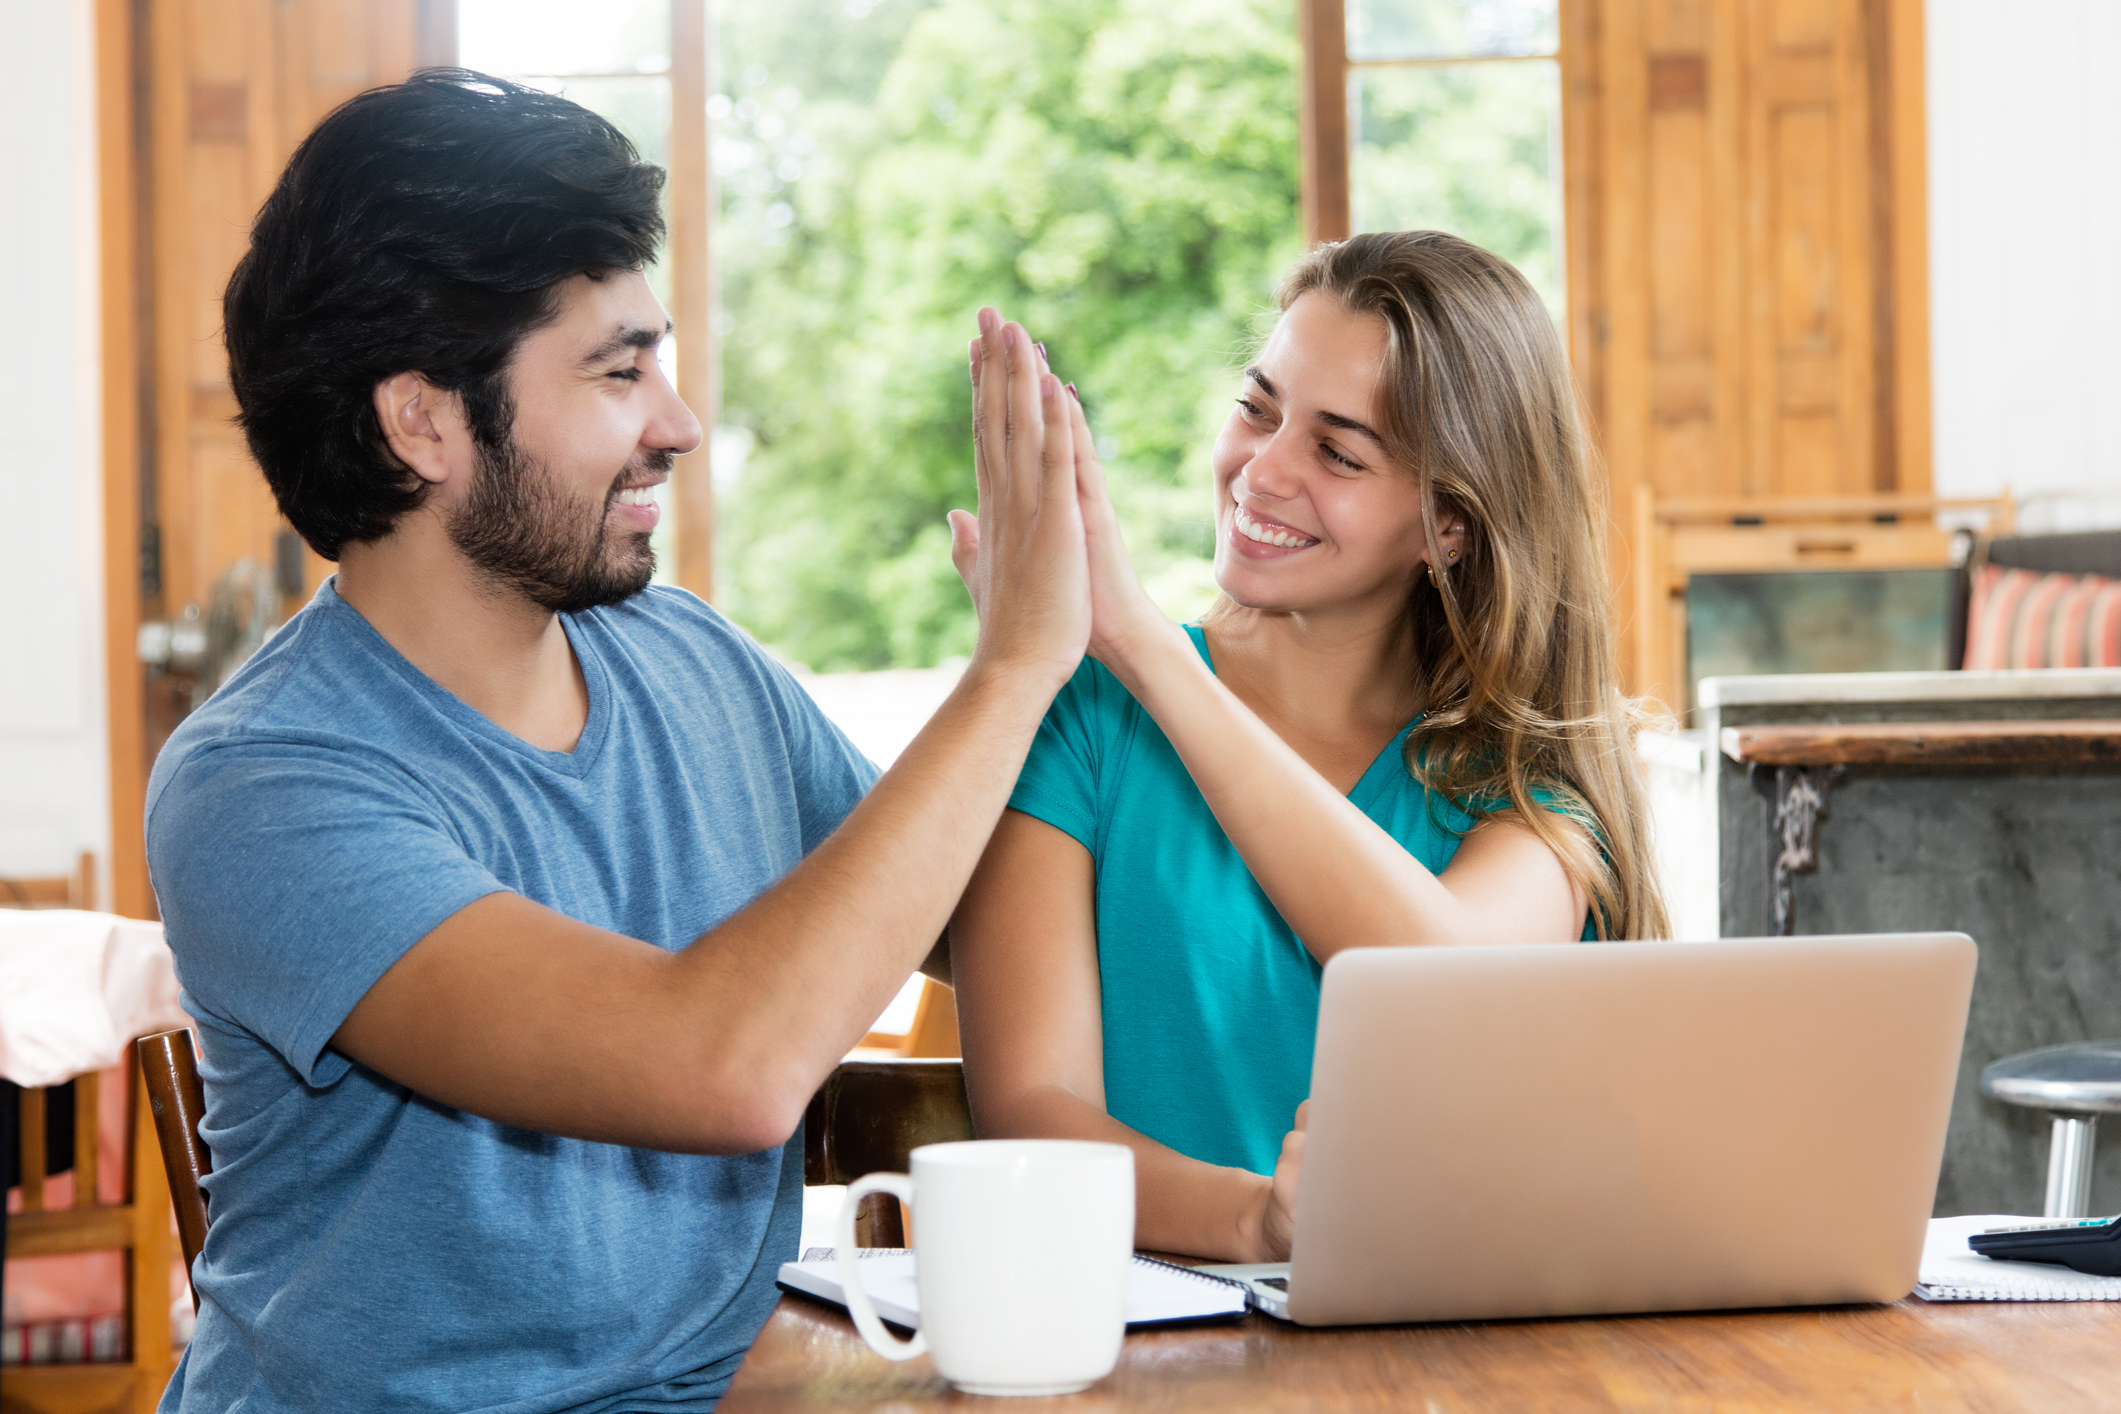 Young Couple High-Fiving In Front Of Laptop